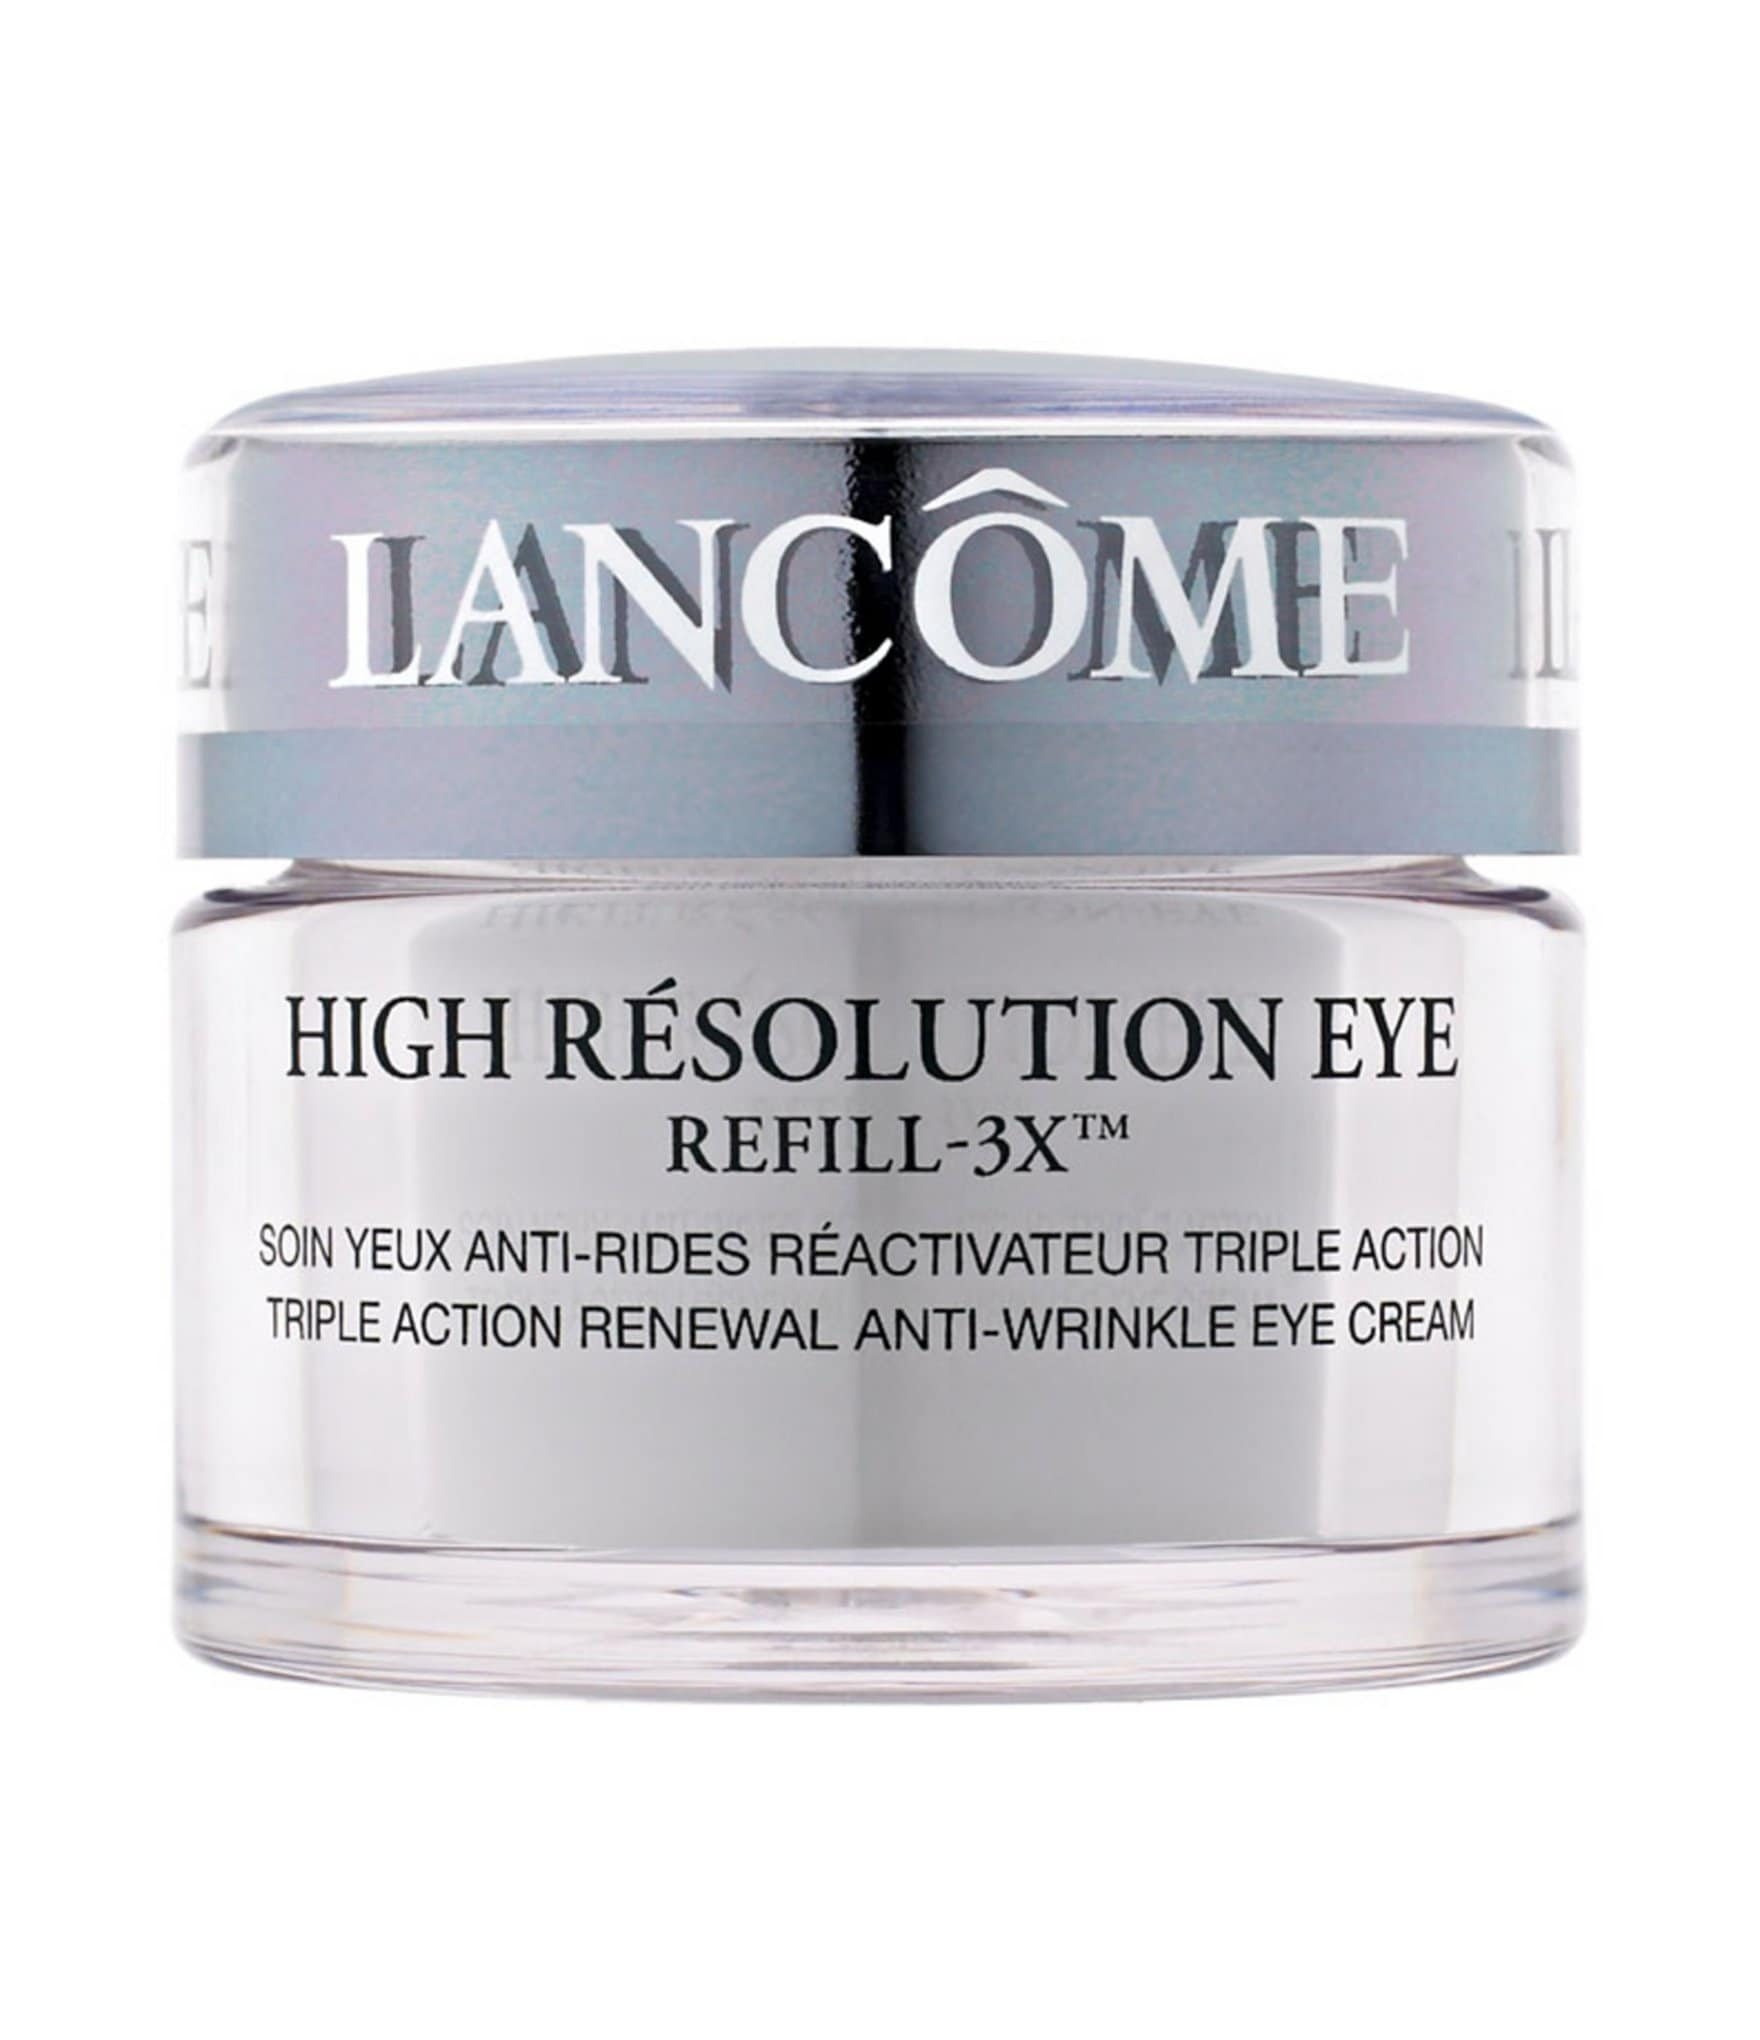 lancome high resolution eye refill